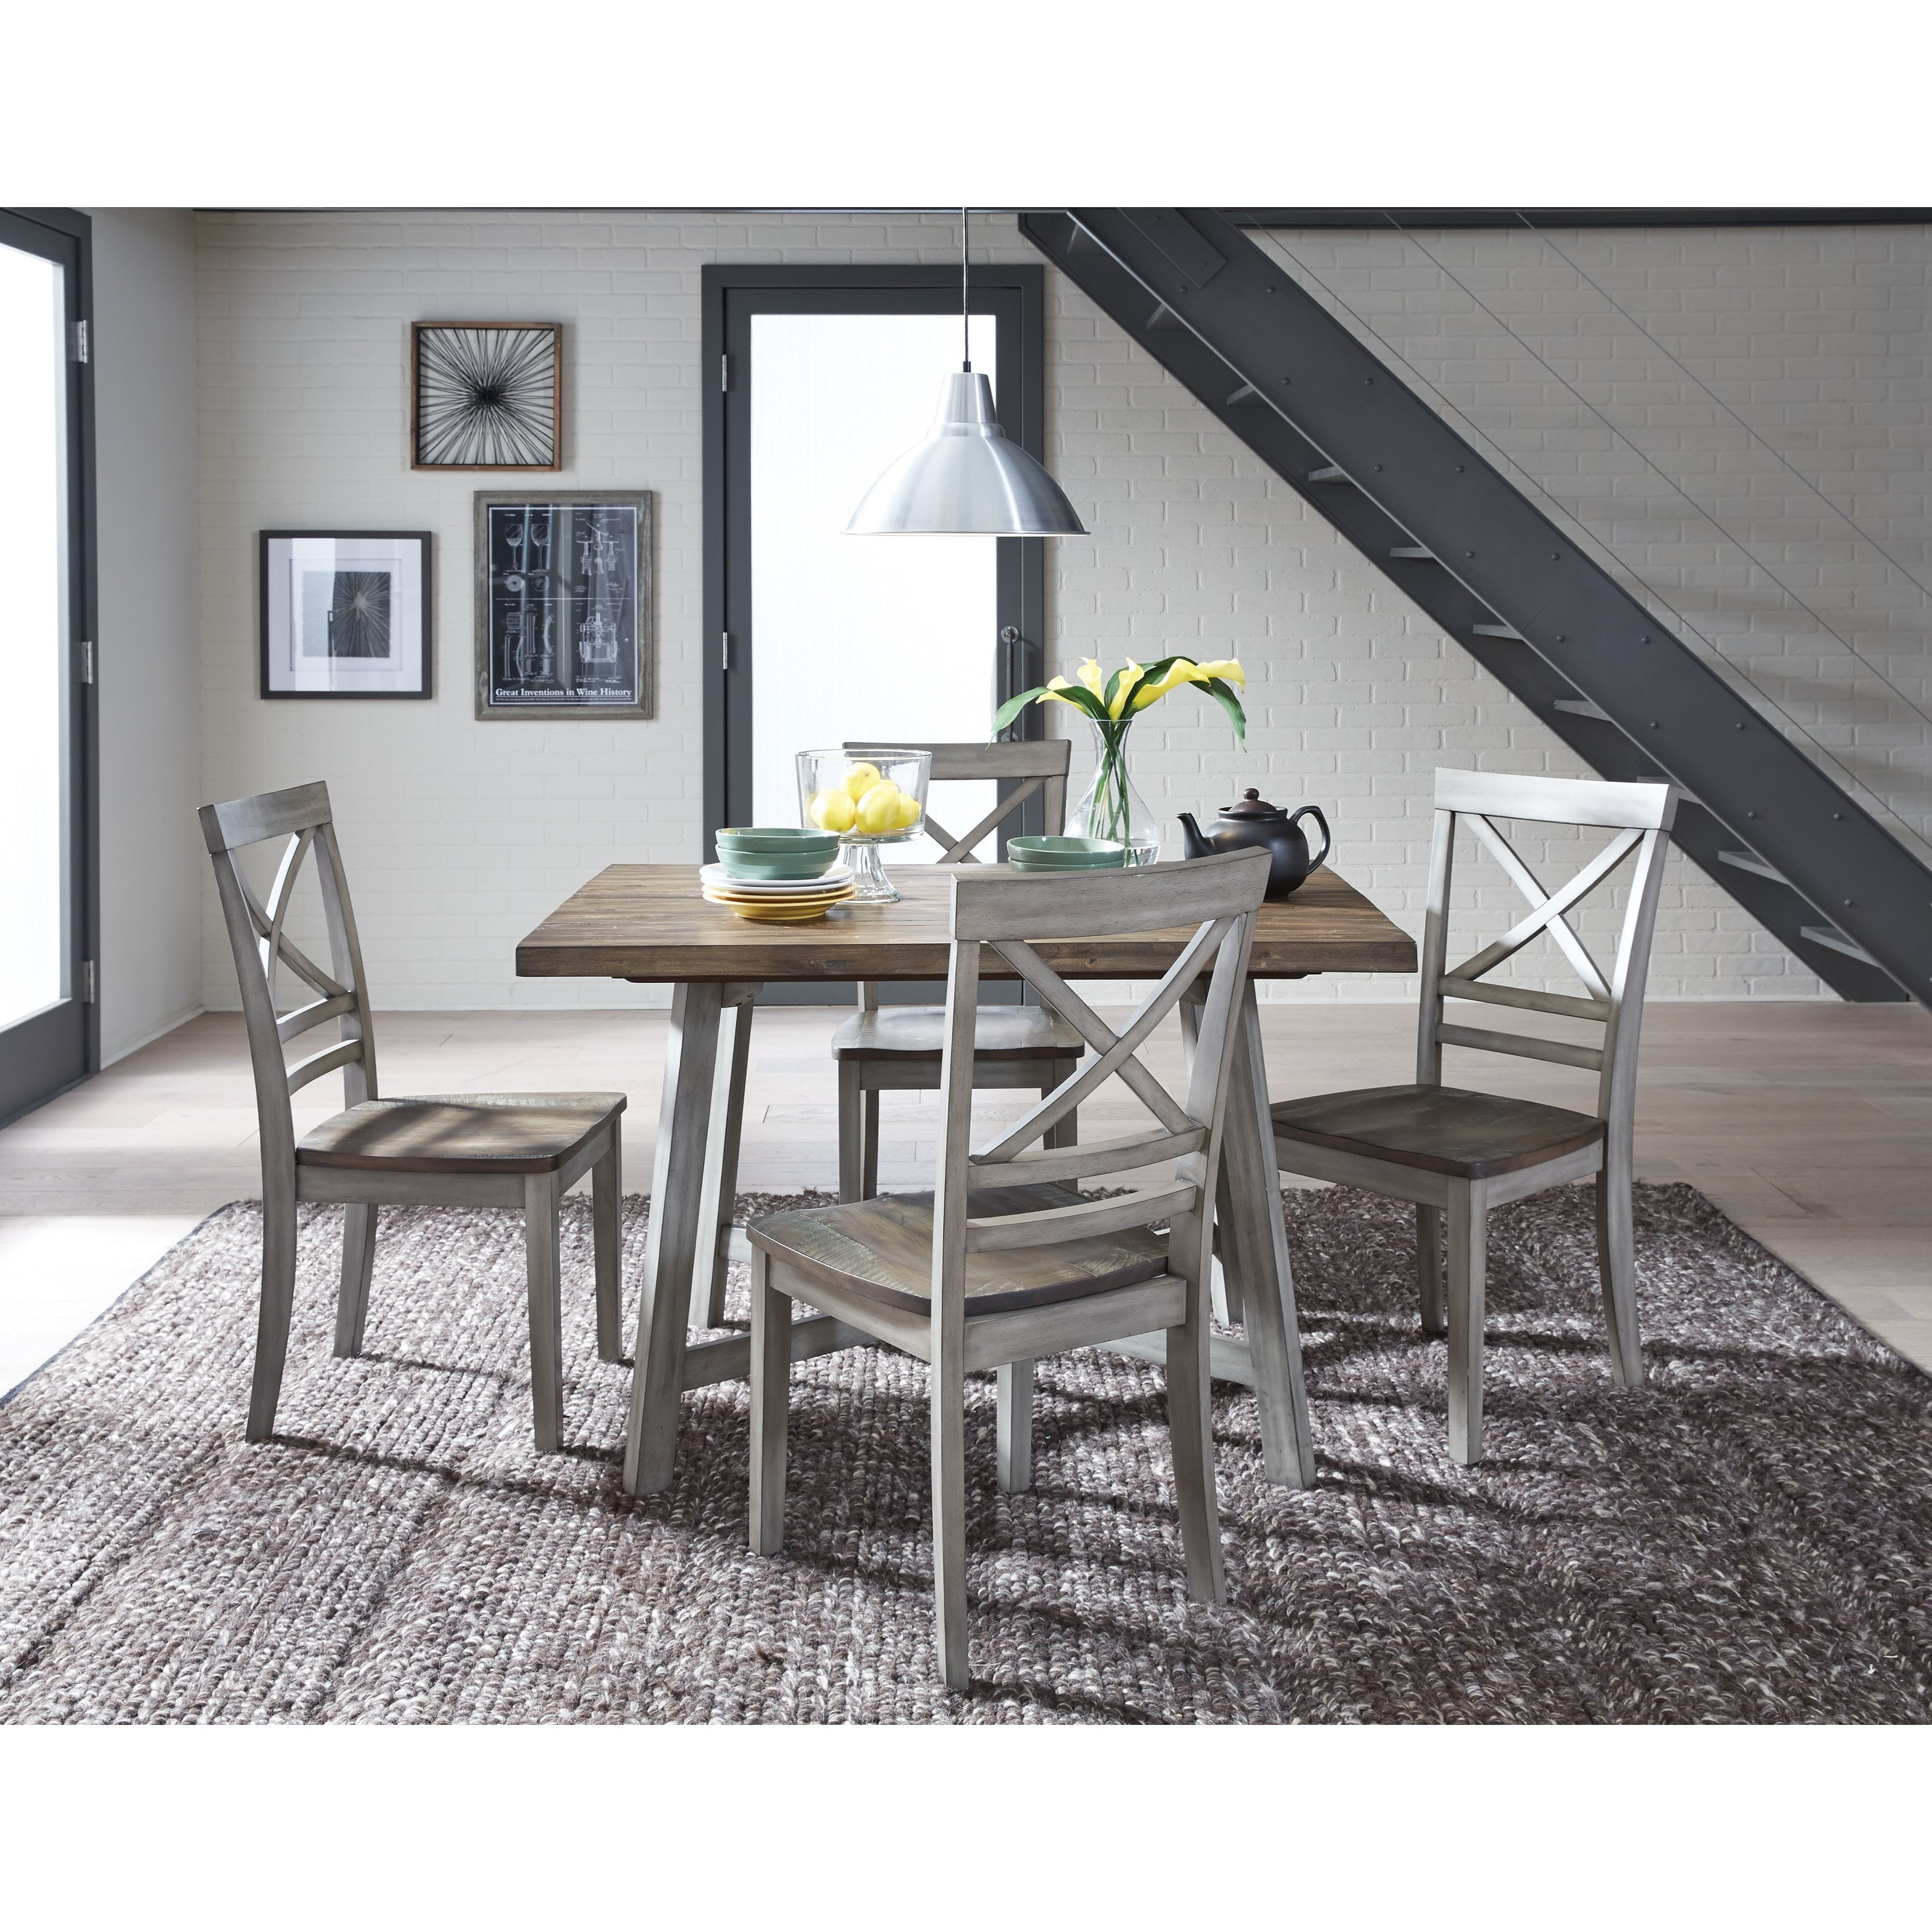 A Kitchen Fairhaven: Standard Furniture Fairhaven Rustic Two-Tone Table And